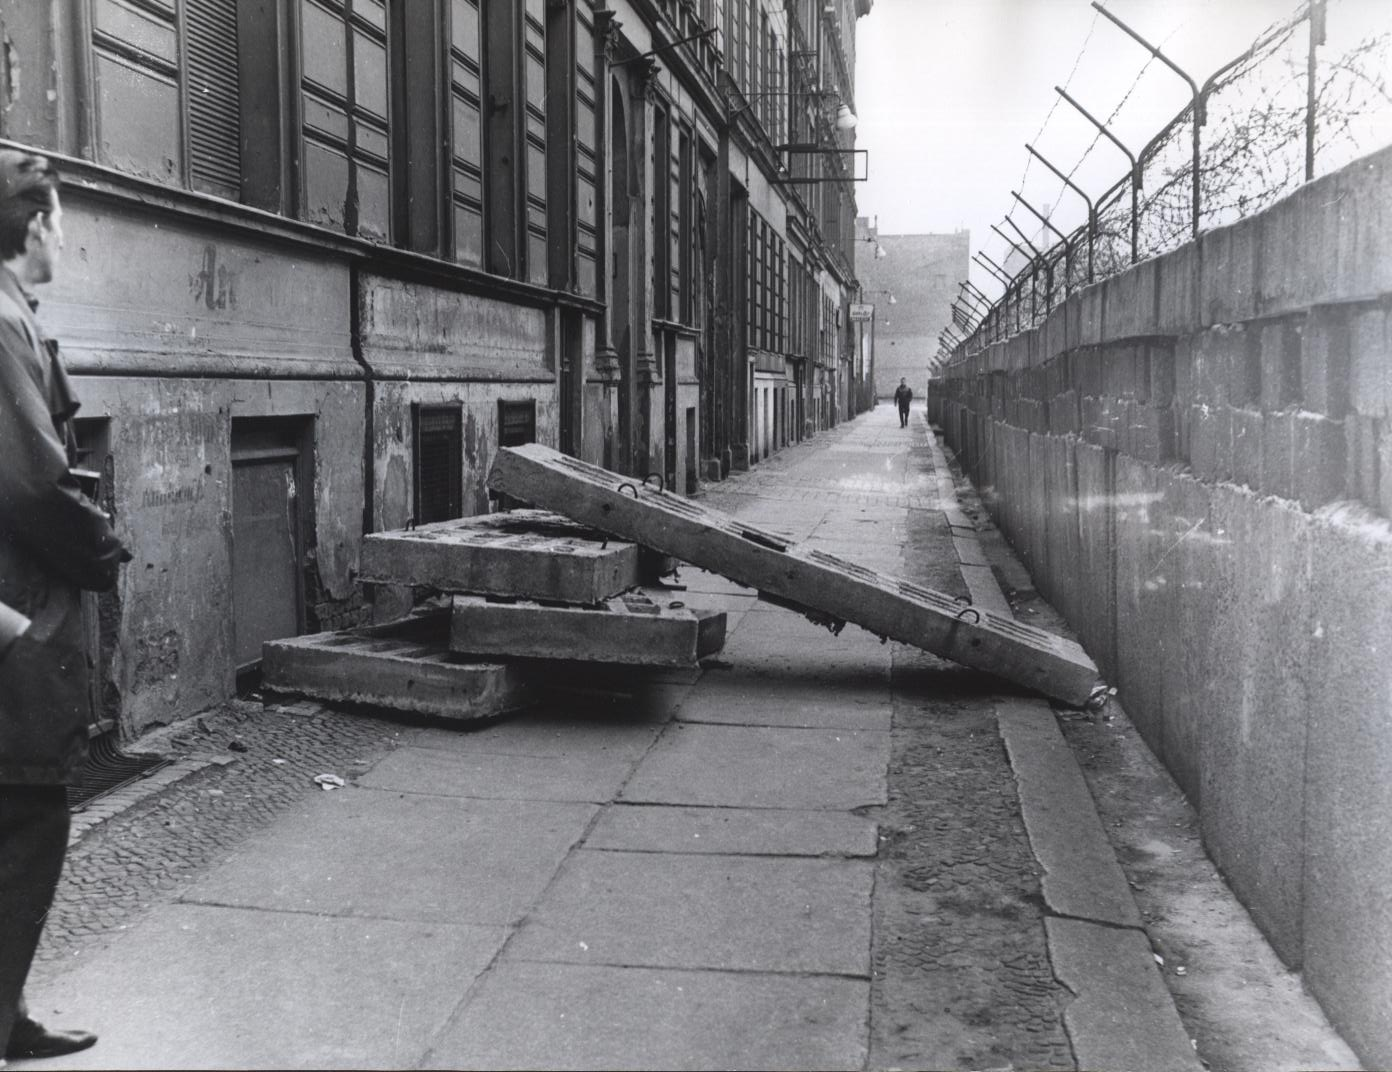 306-bn-95-16_berlin-kreuzberg-heinrich-heinestrasse-corner-to-sebastianstrasse-new-harassments-for-residents-of-west-berlin-apartments-are-closed-off-by-cement-blocks-04-25-1963